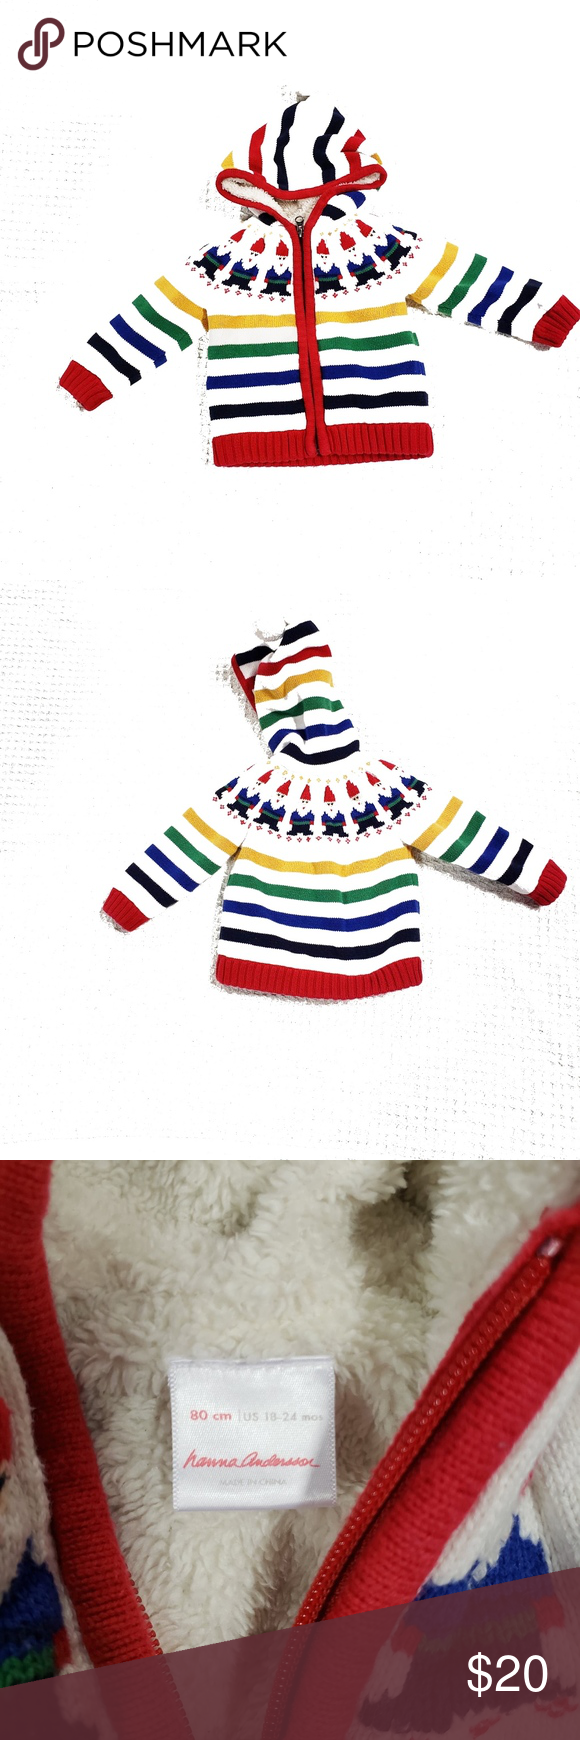 67905f81d65a Hanna Andersson Gnome Sweet Gnome Sweater Jacket Hanna Andersson ...